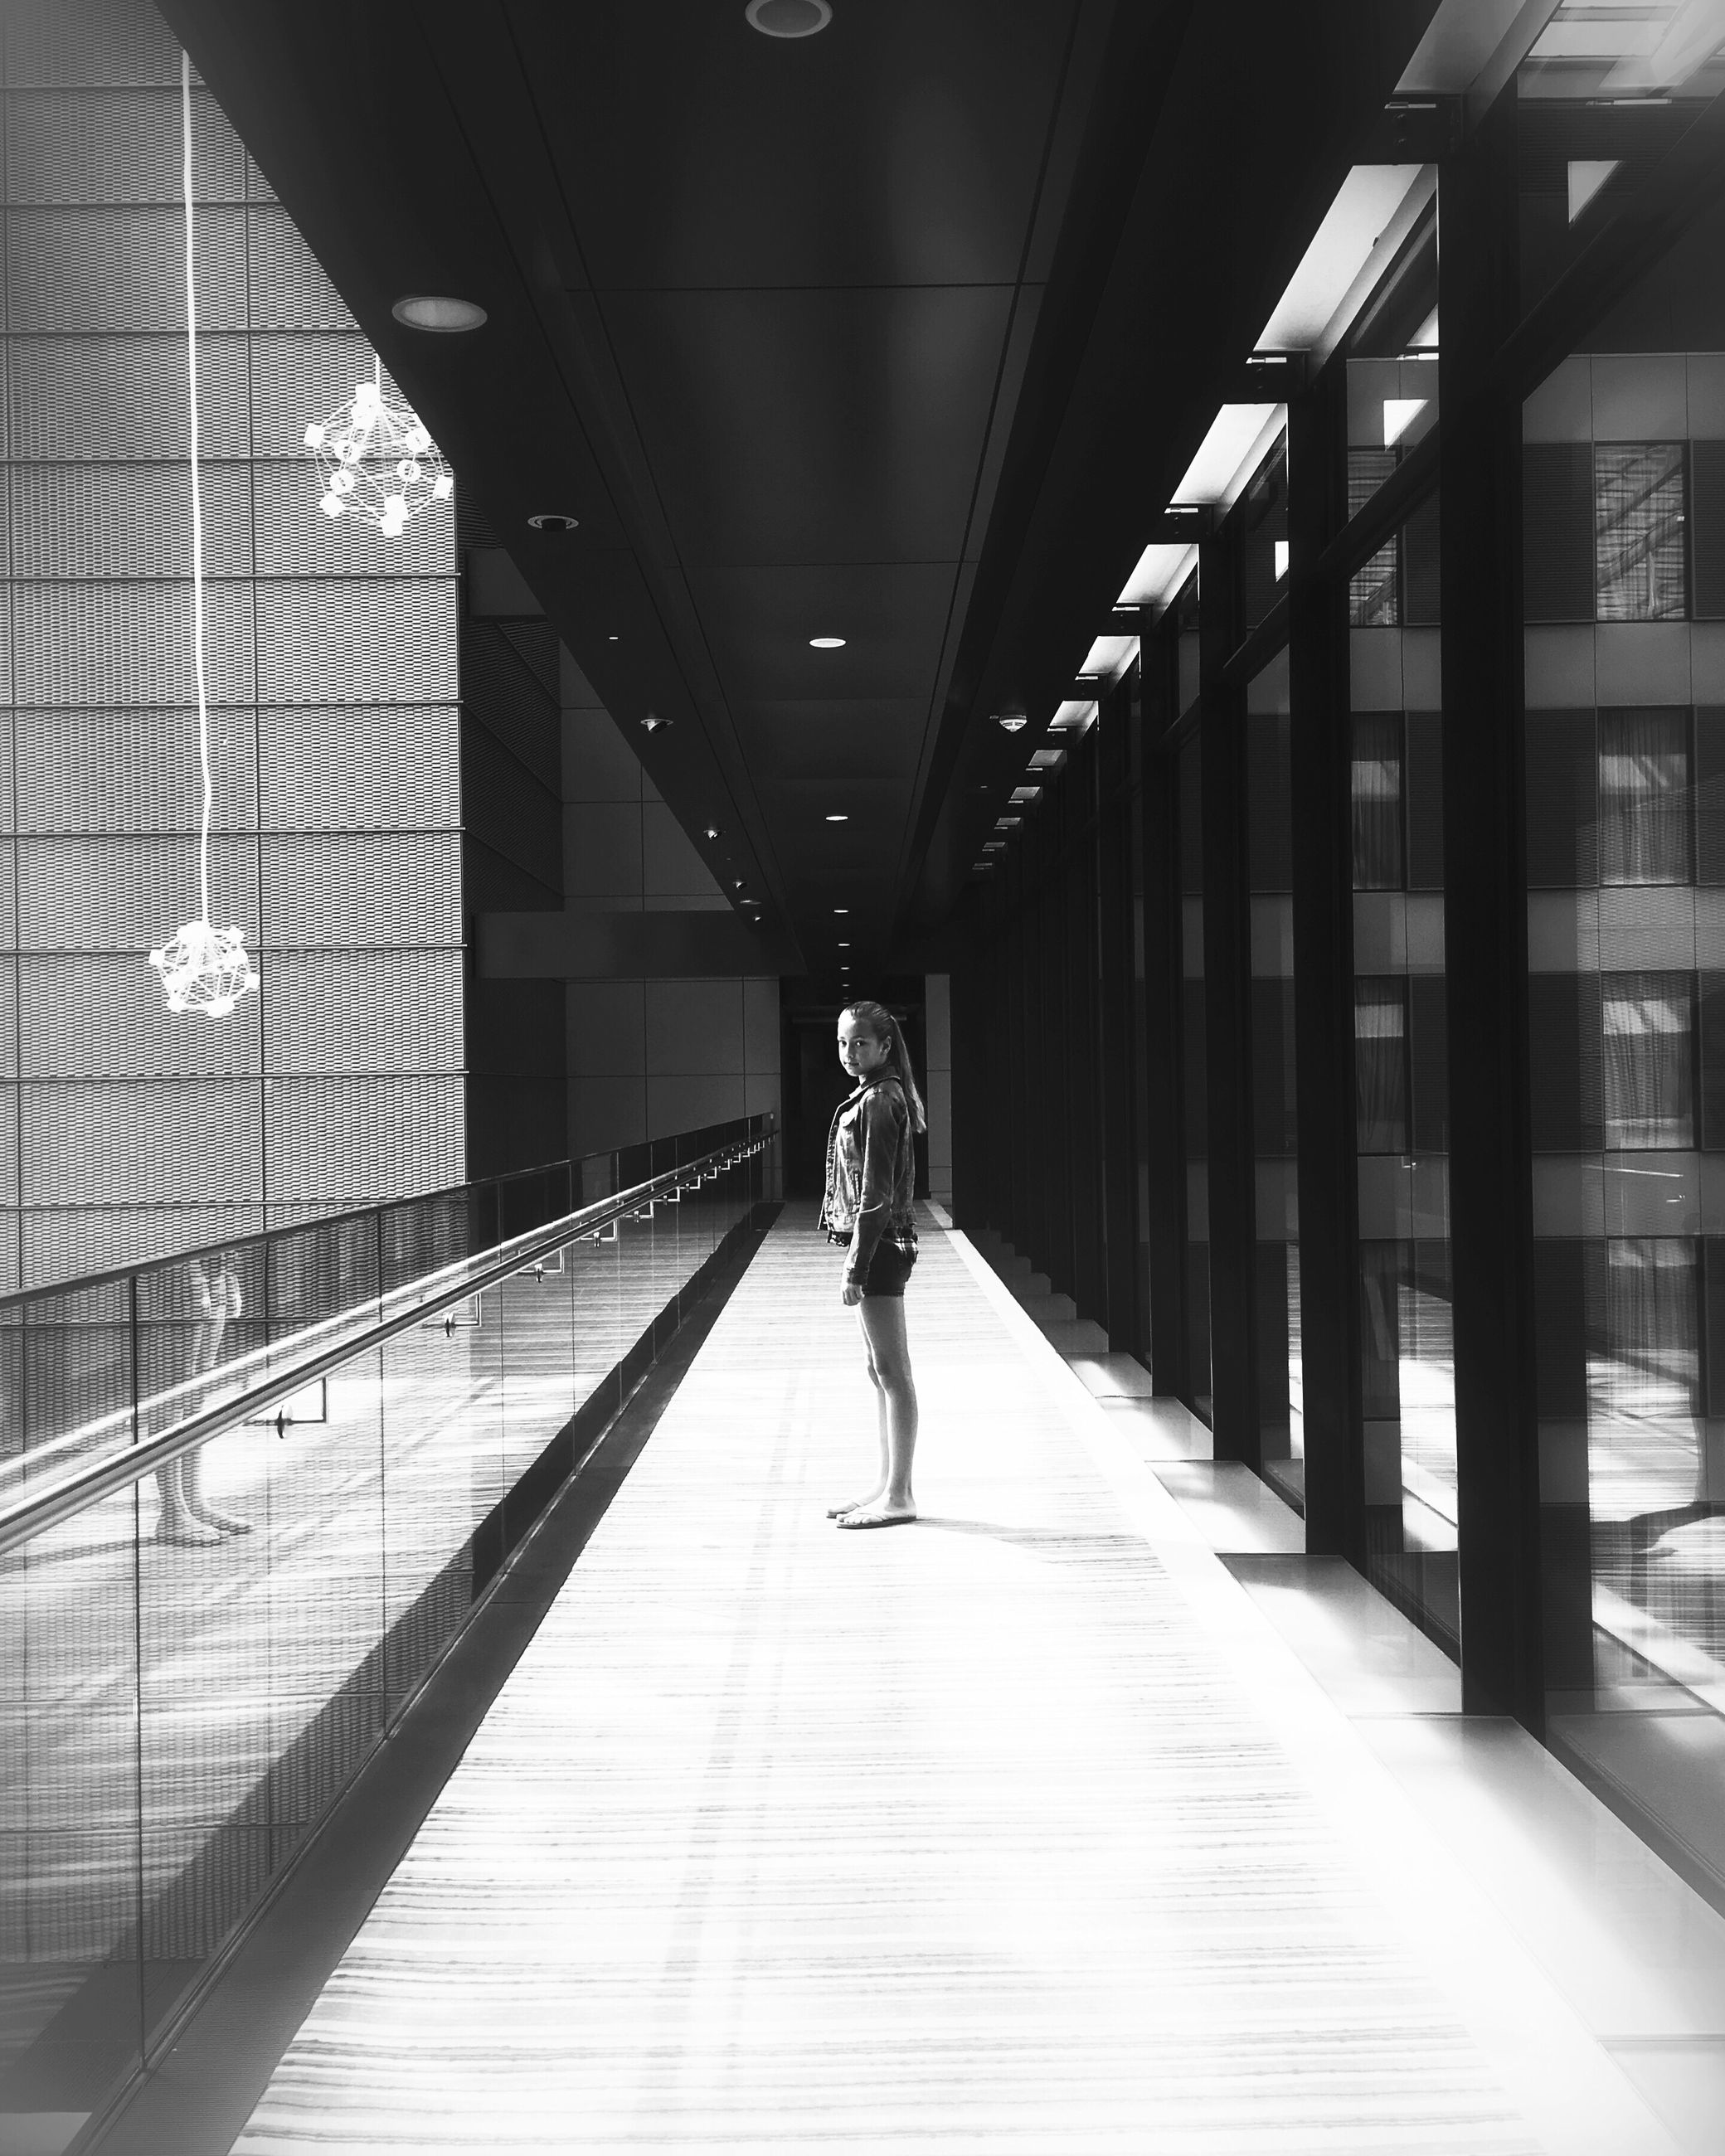 full length, indoors, architecture, walking, built structure, lifestyles, rear view, the way forward, corridor, men, person, leisure activity, casual clothing, city life, diminishing perspective, modern, ceiling, building